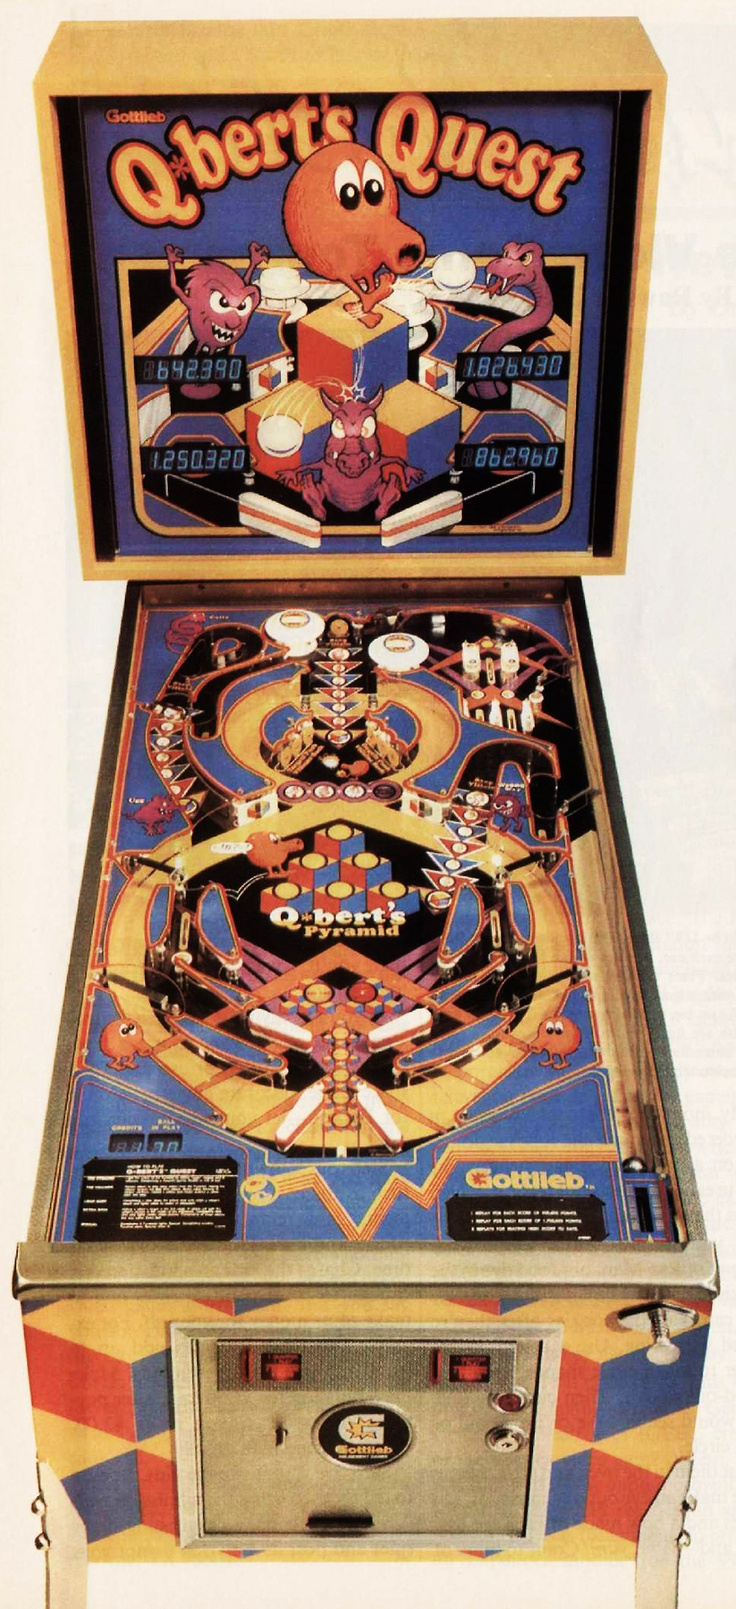 Gottileb Q-Berts Quest pinball machine